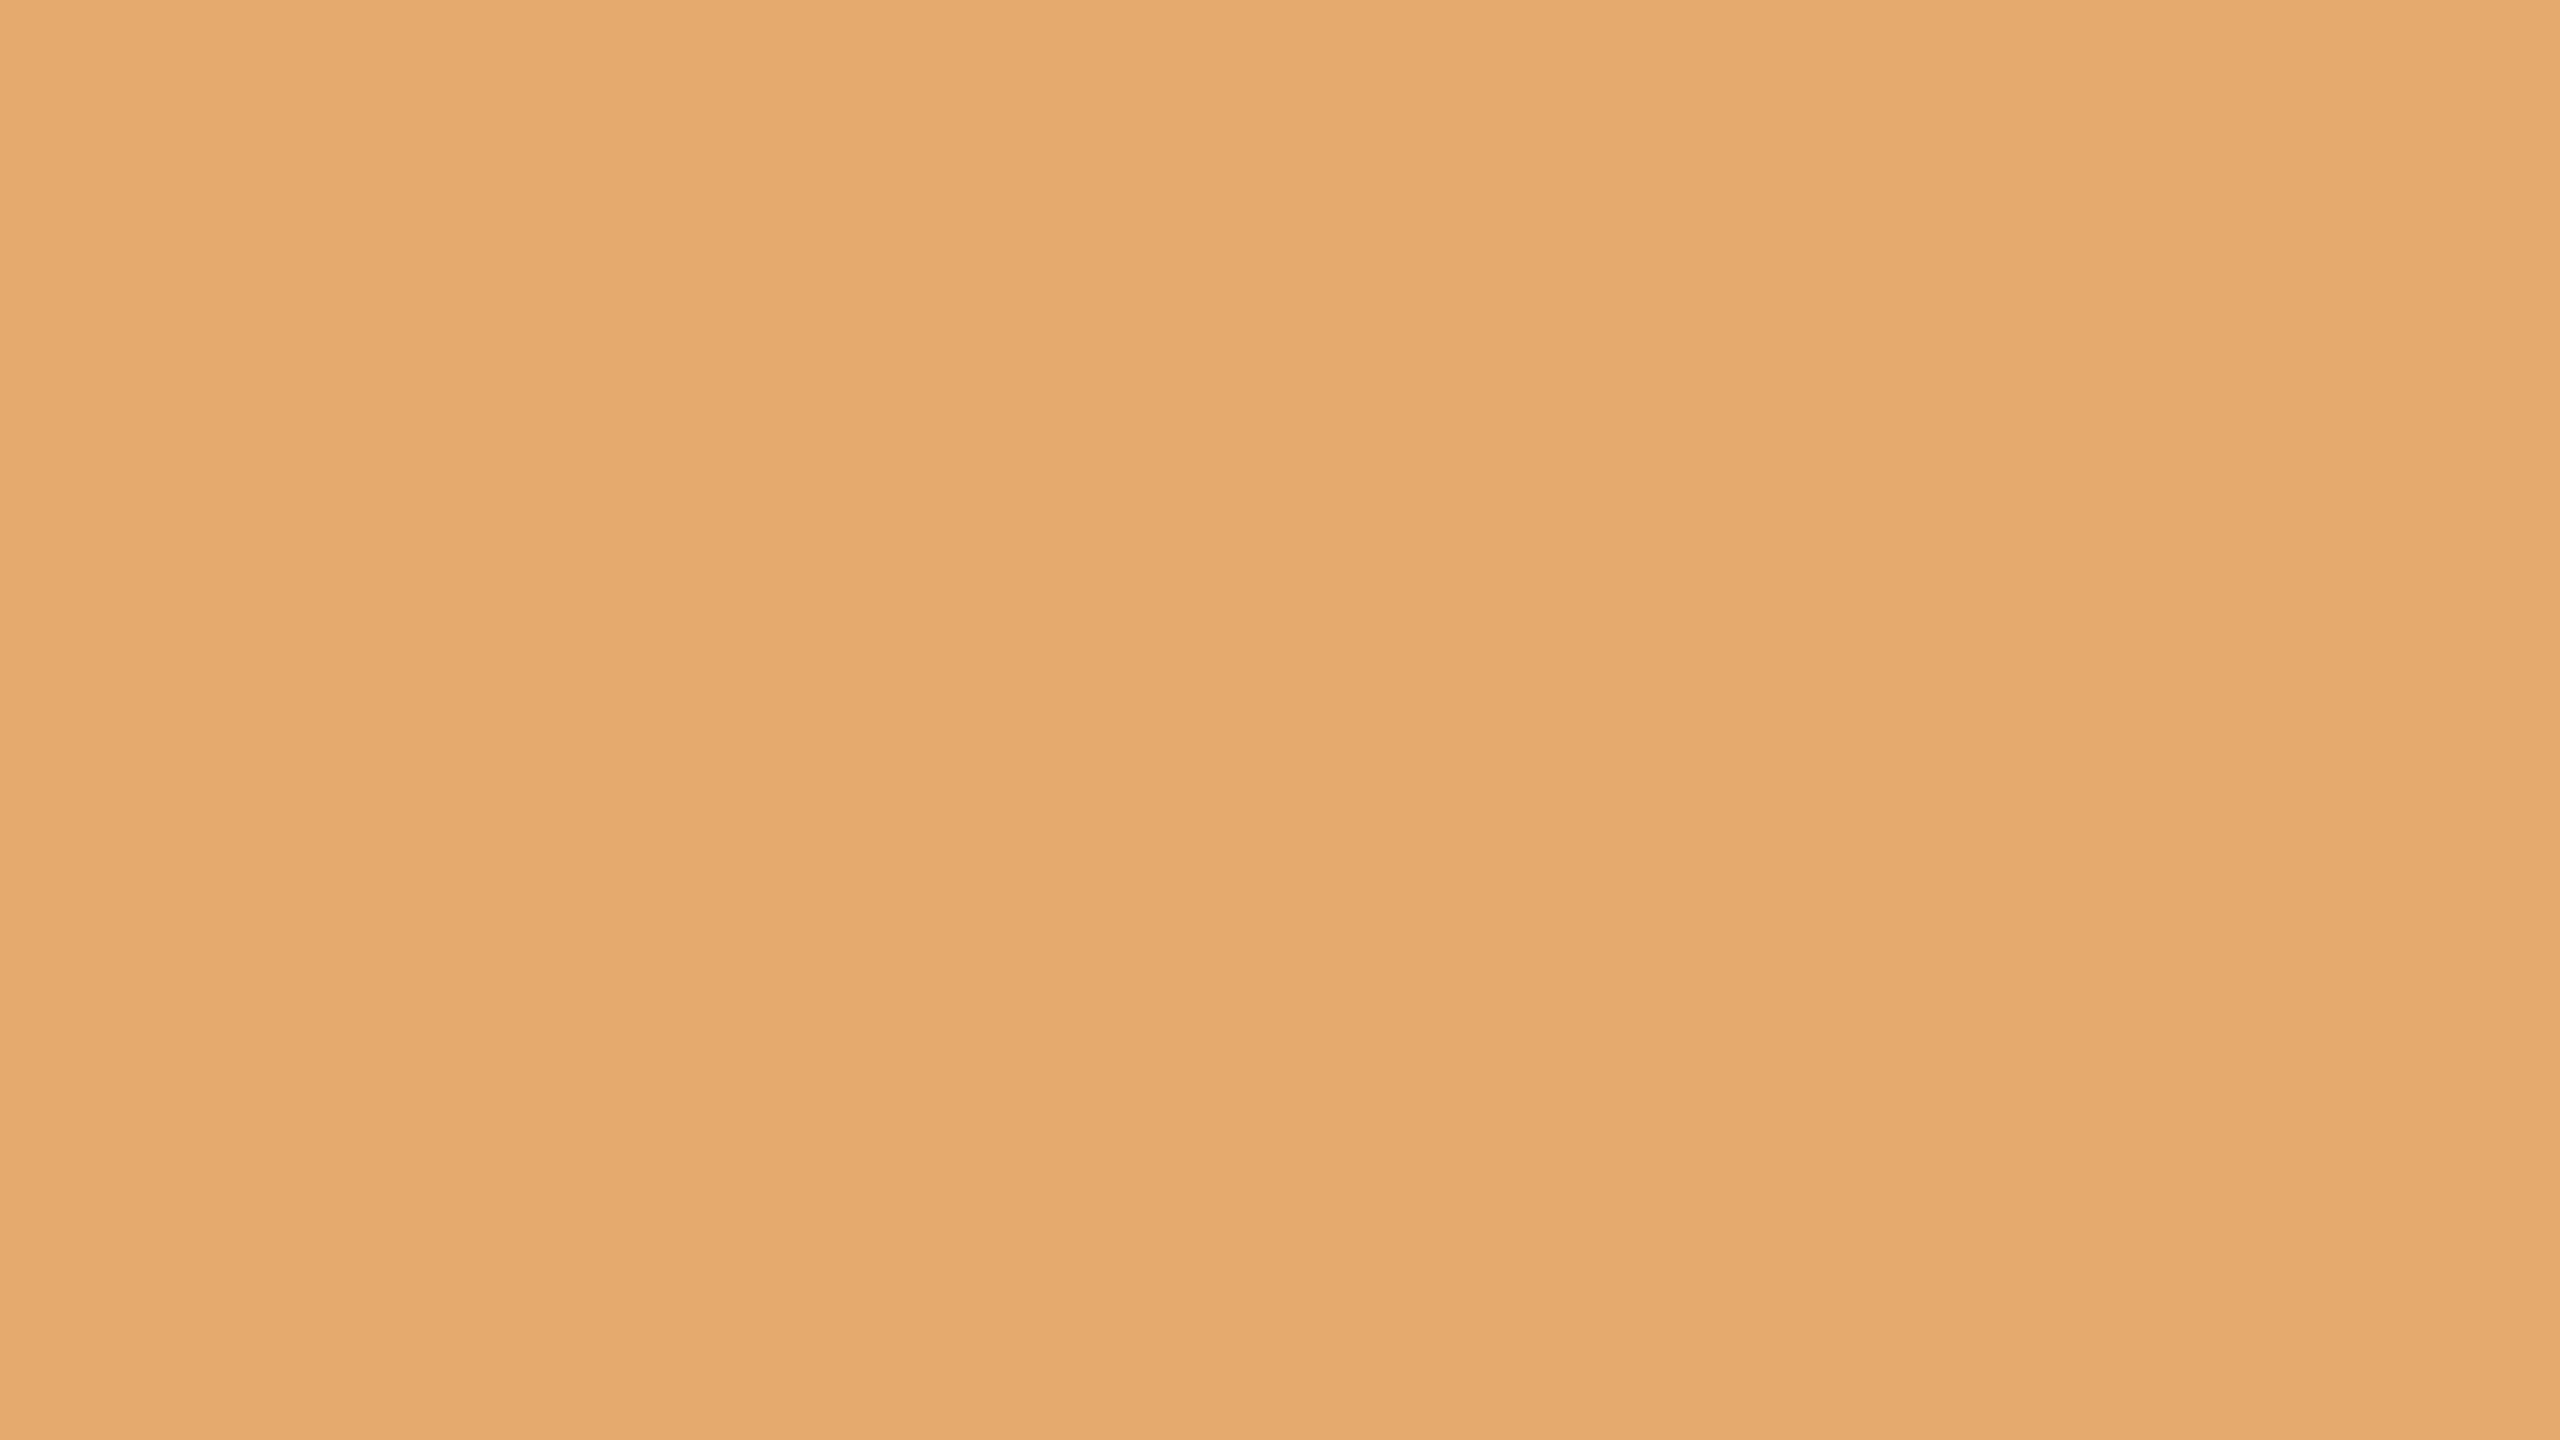 2560x1440 Fawn Solid Color Background